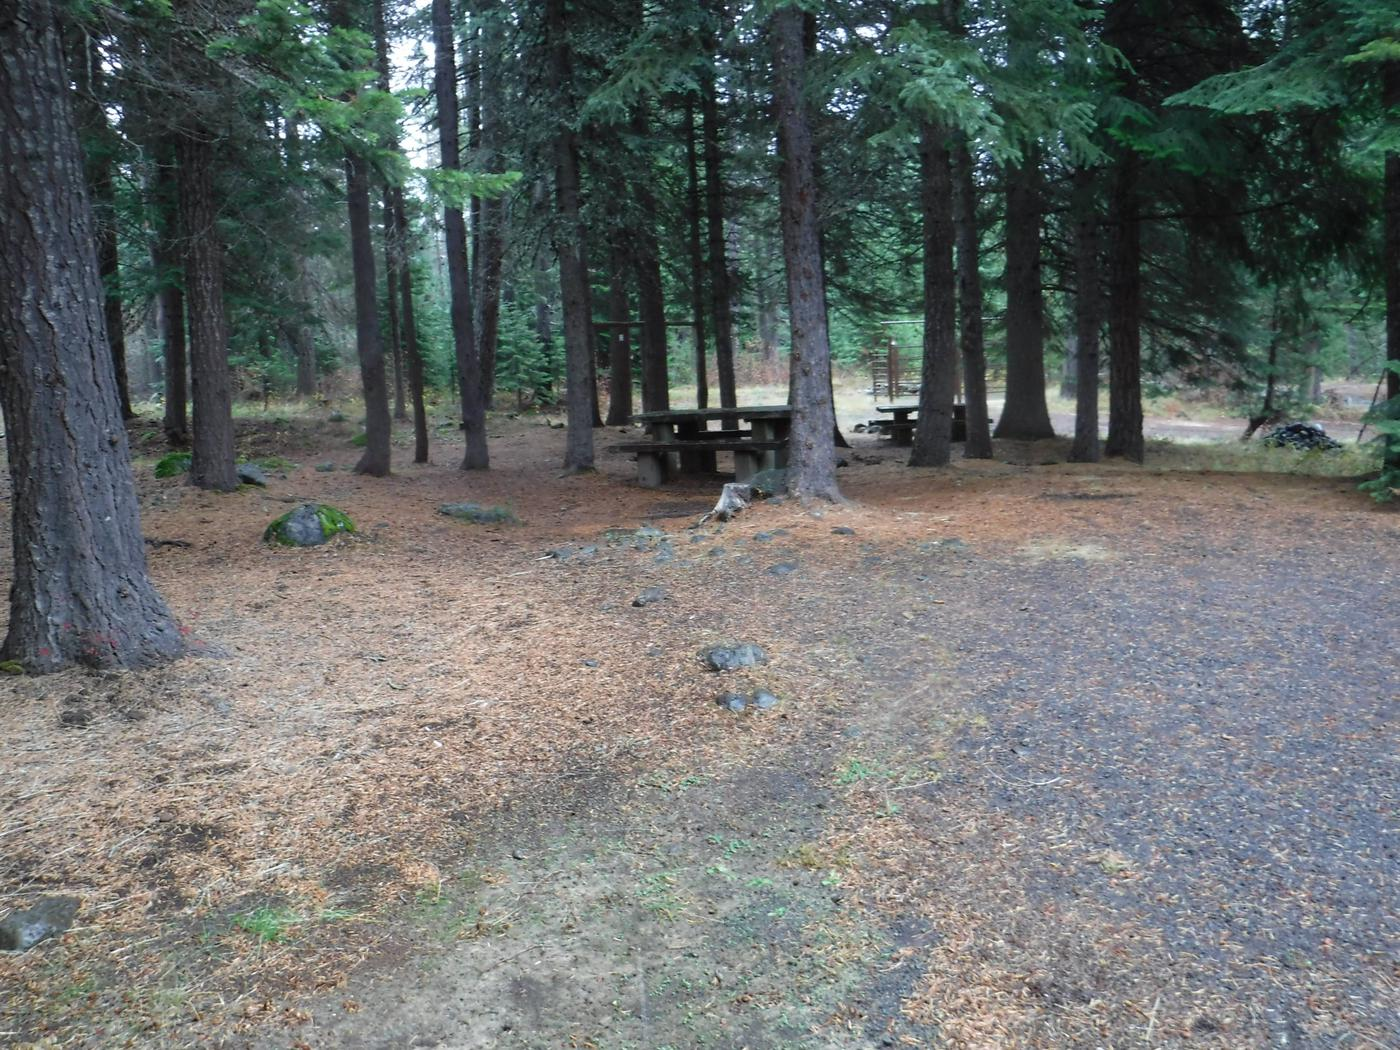 Flat campsite with one picnic table and fire ring.A002